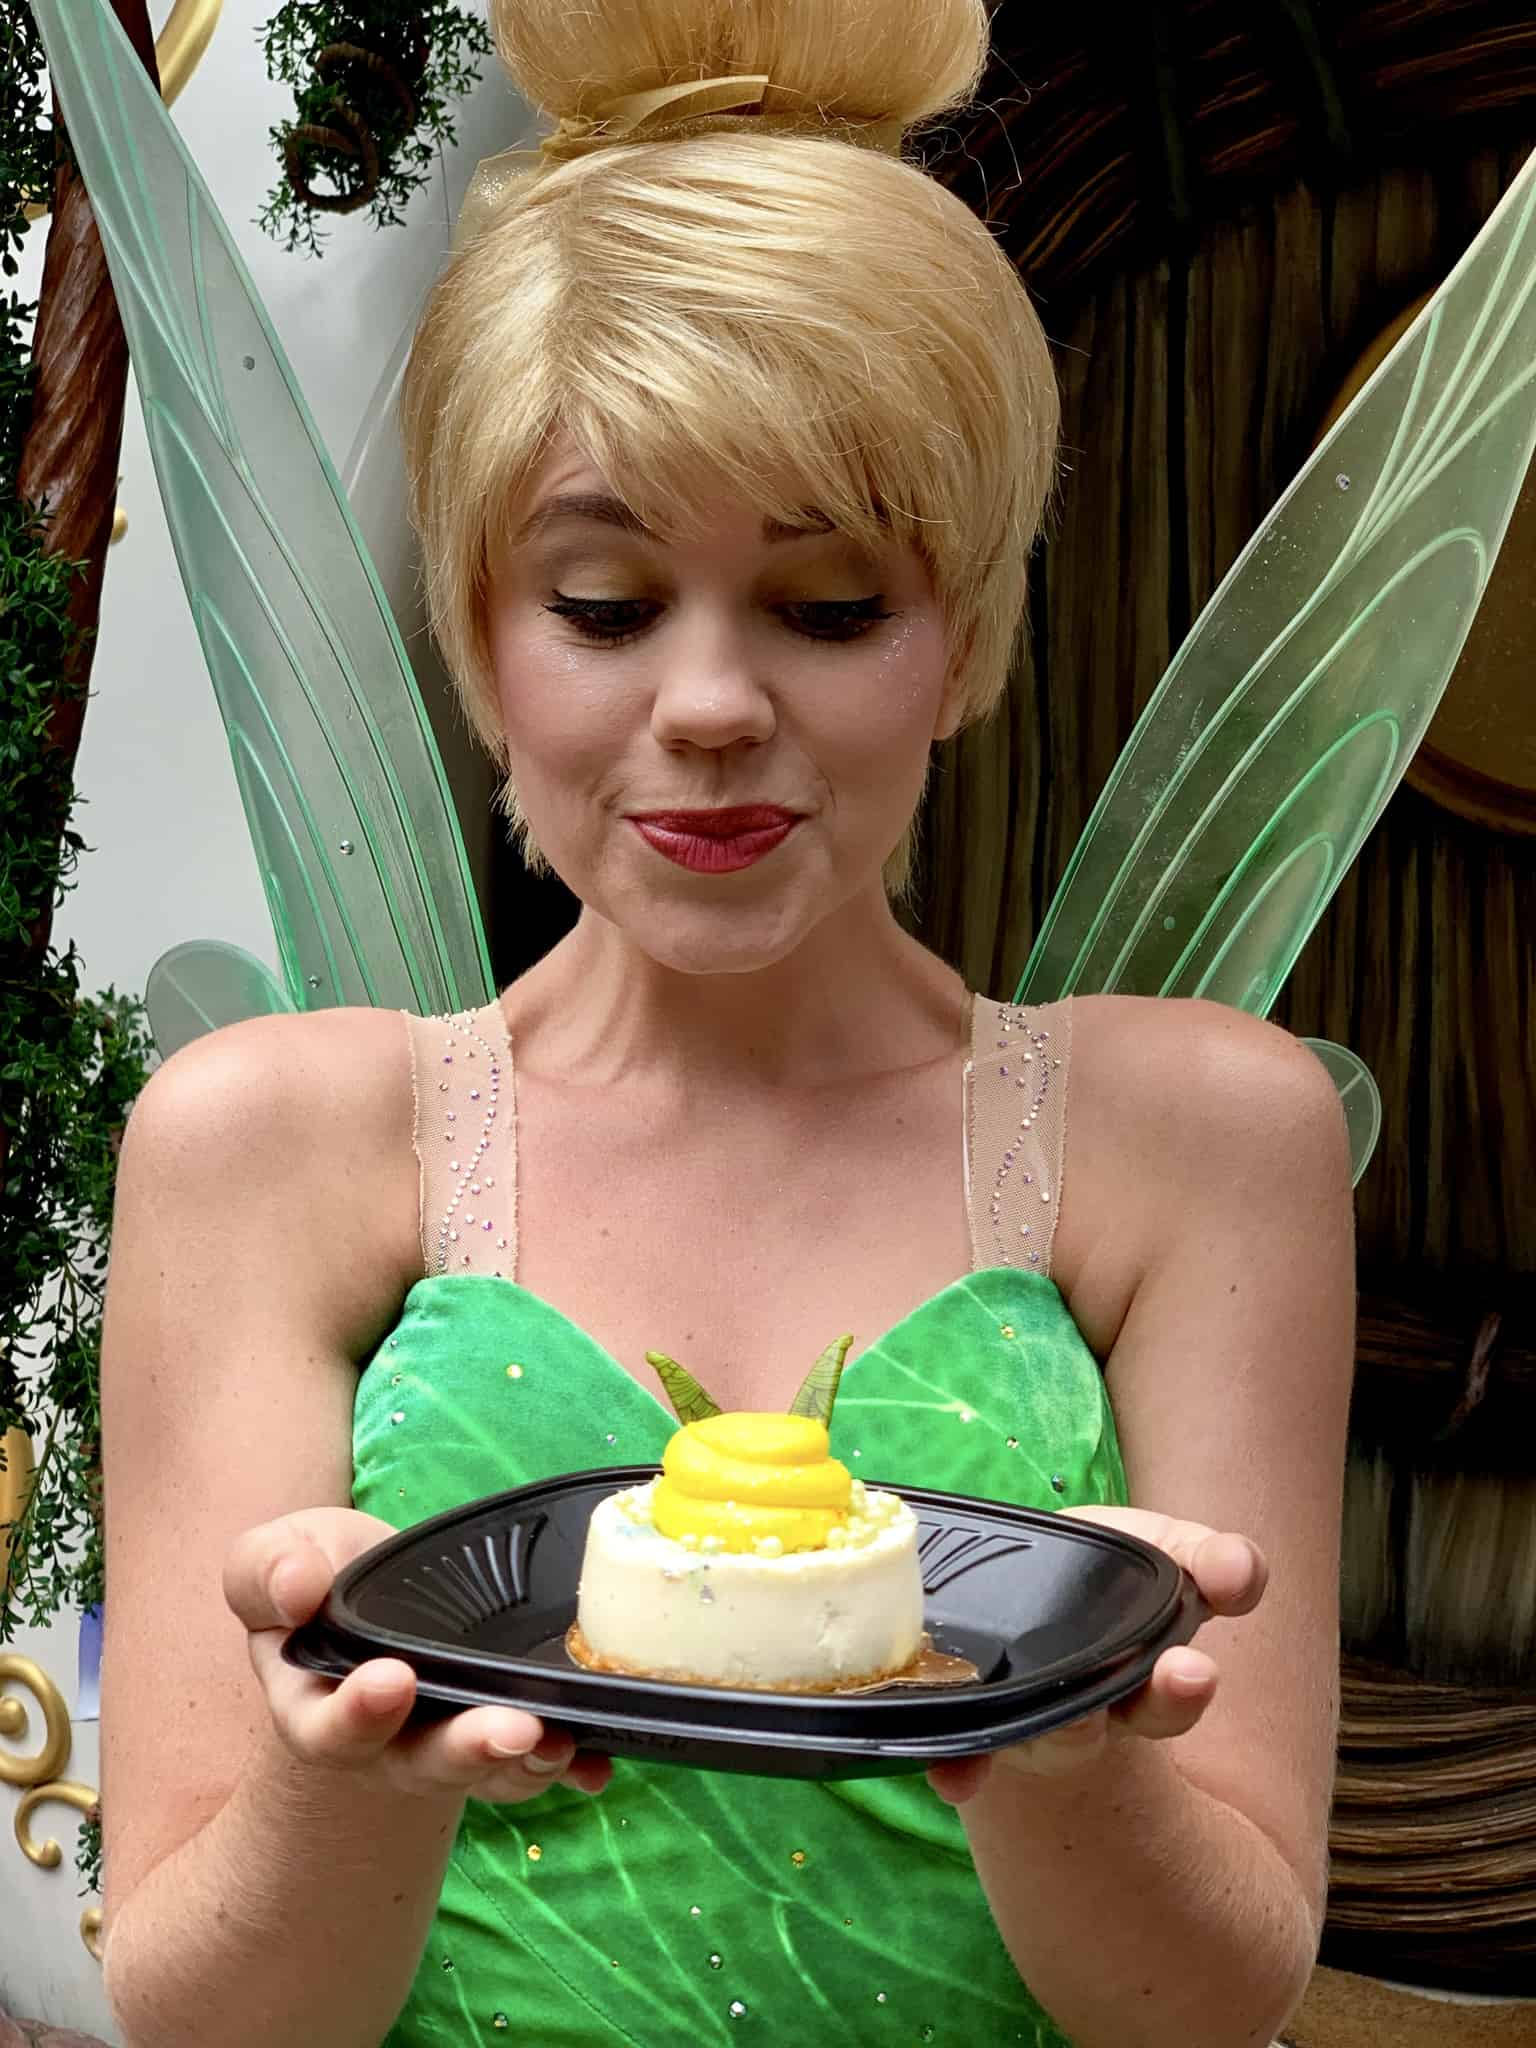 Tinker Bell Inpsired Coconut Cheesecake Jolly Holiday Bakery Disneyland Park